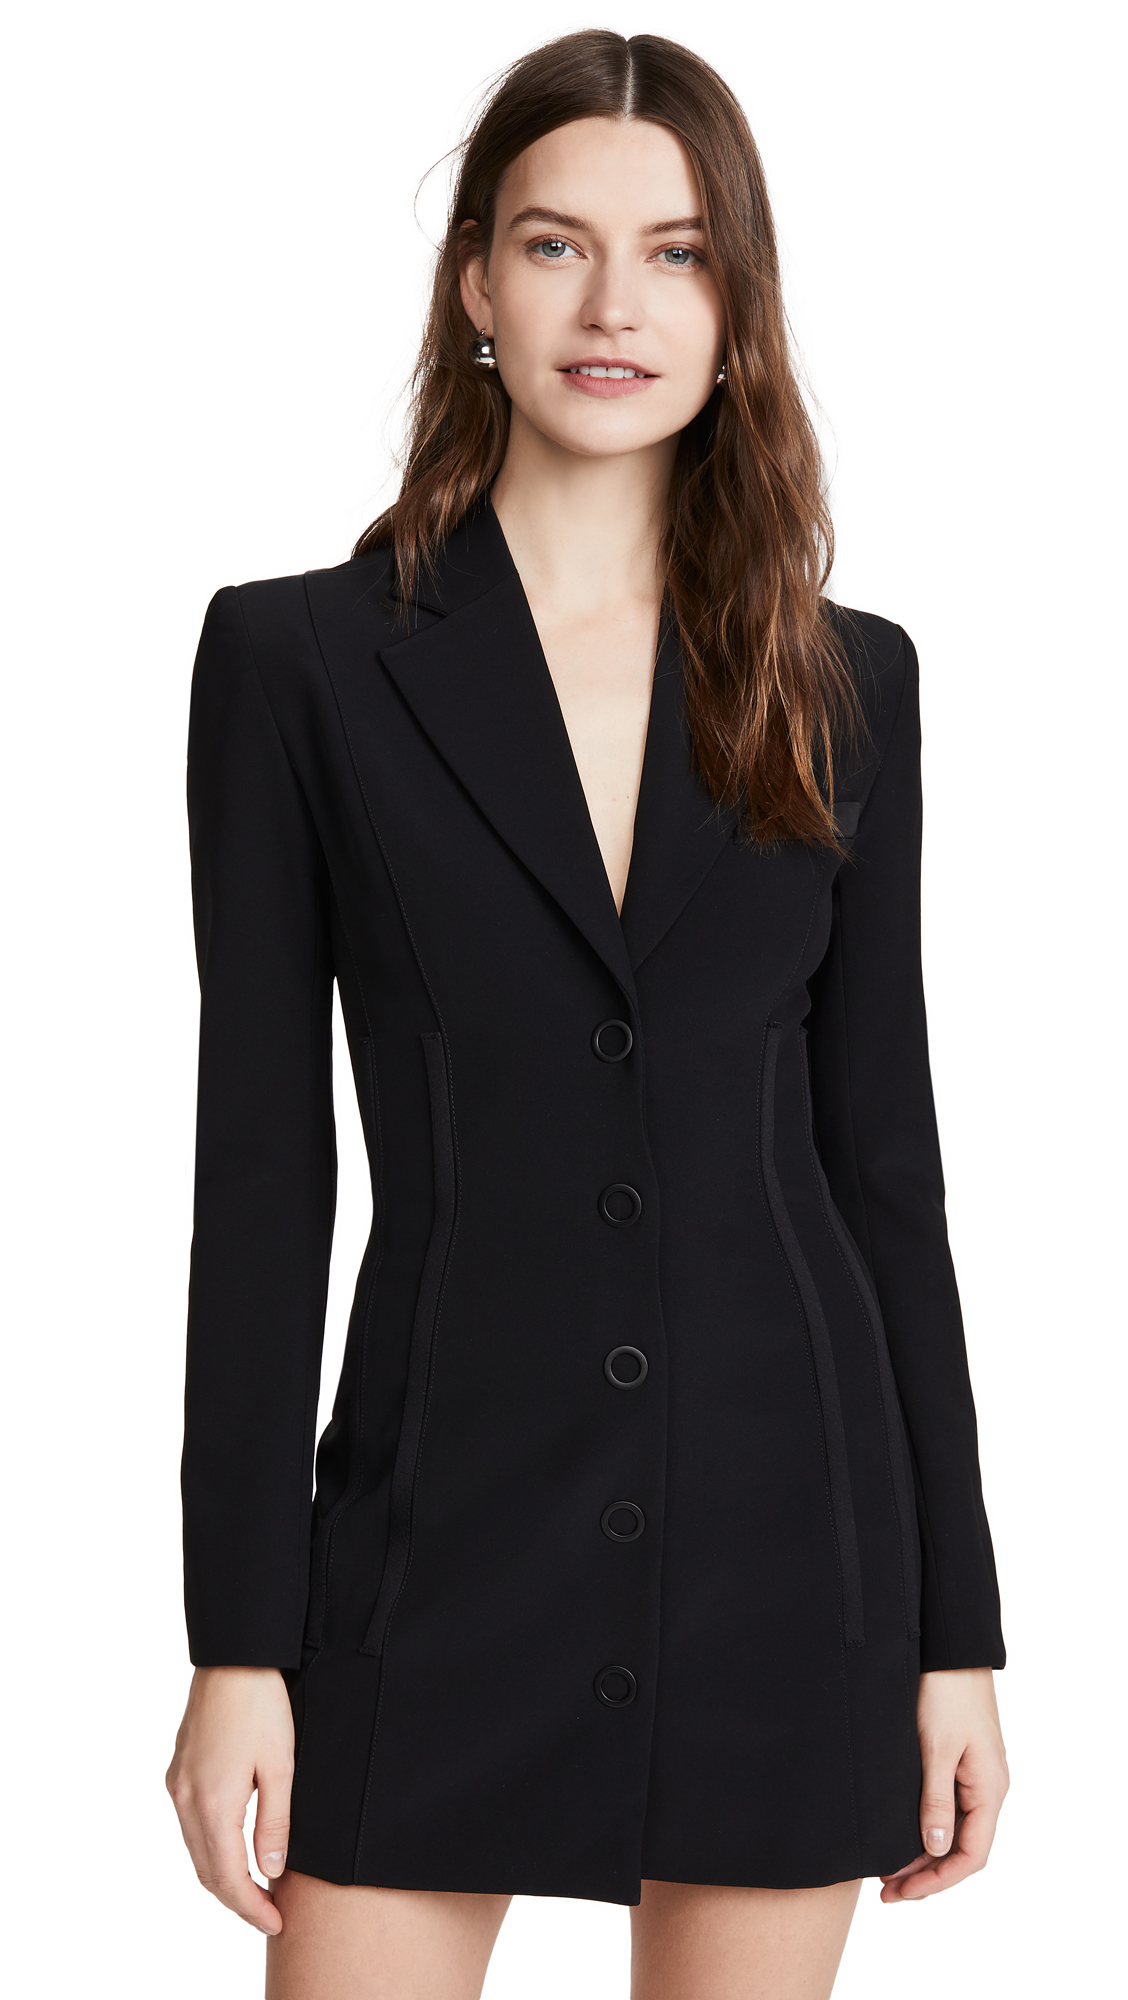 Manning Cartell Australia Sharp Shooter Corset Blazer Dress - 30% Off Sale